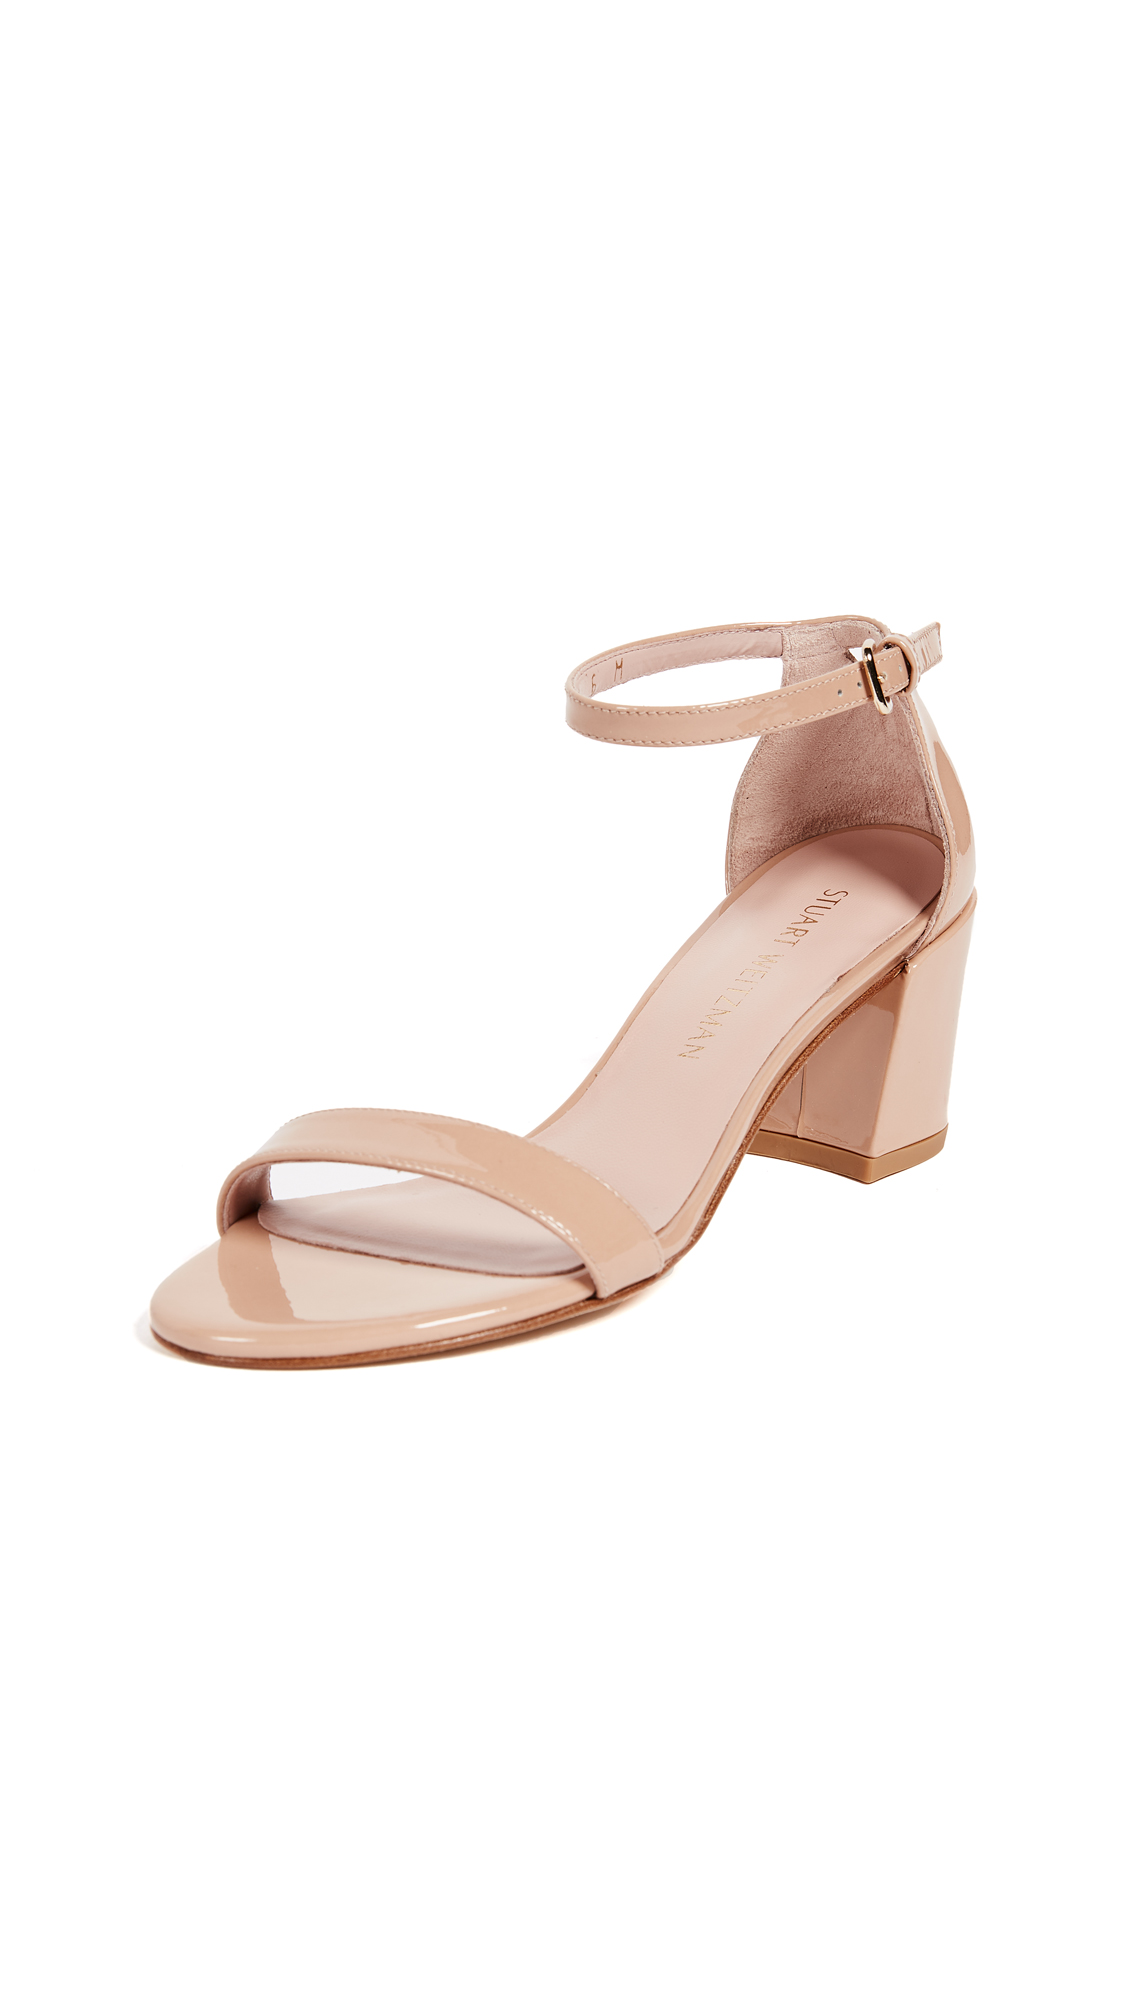 Stuart Weitzman Simple Sandals - Adobe